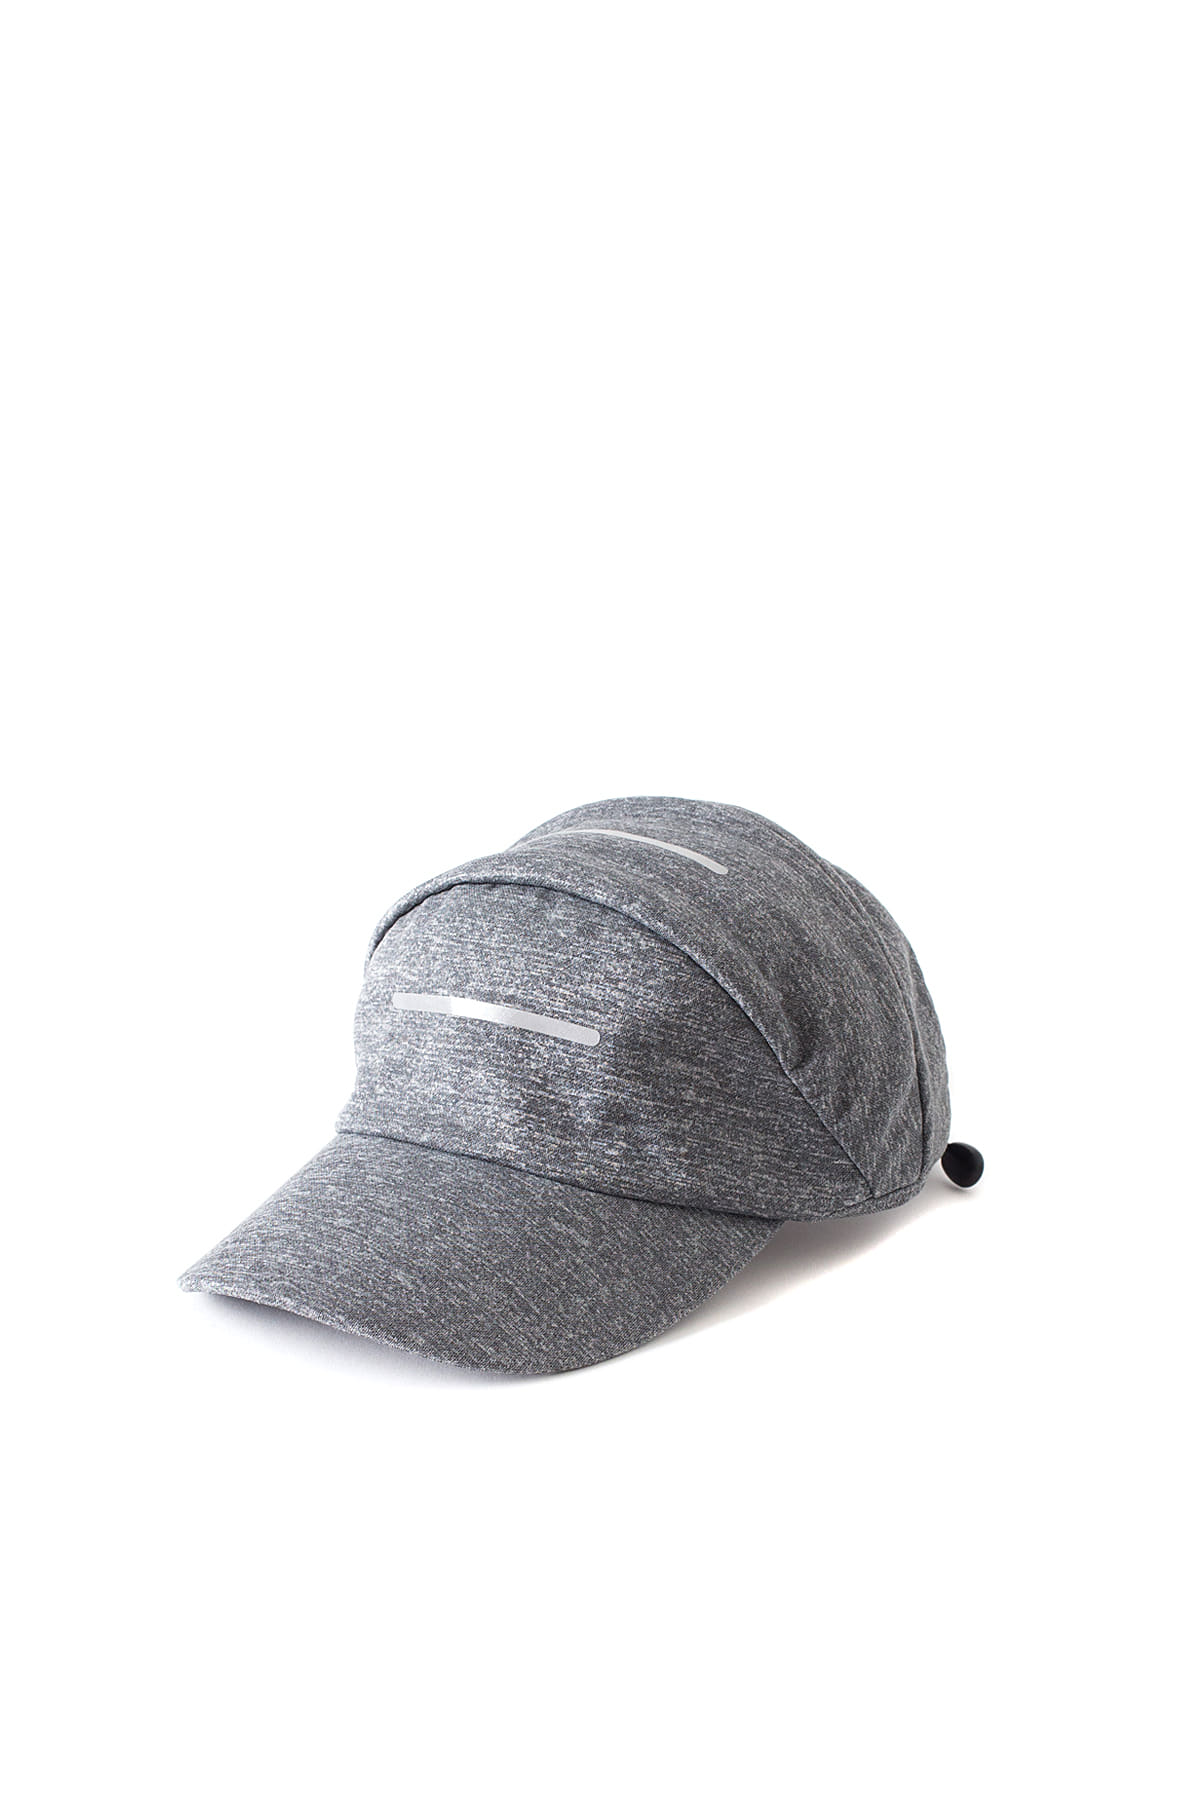 alk phenix : Dome Cap/ Reflector Heather (Grey)